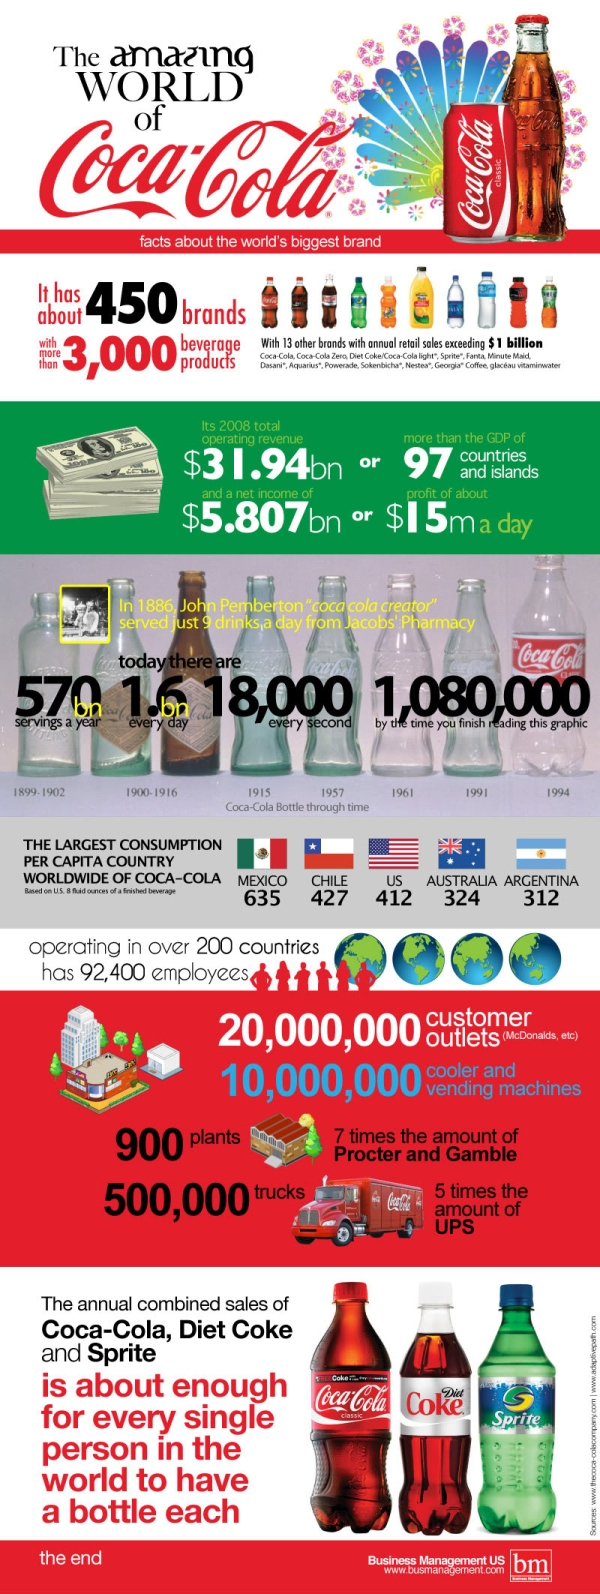 Coca Cola Facts  How Coca-Cola Runs the World and Facts